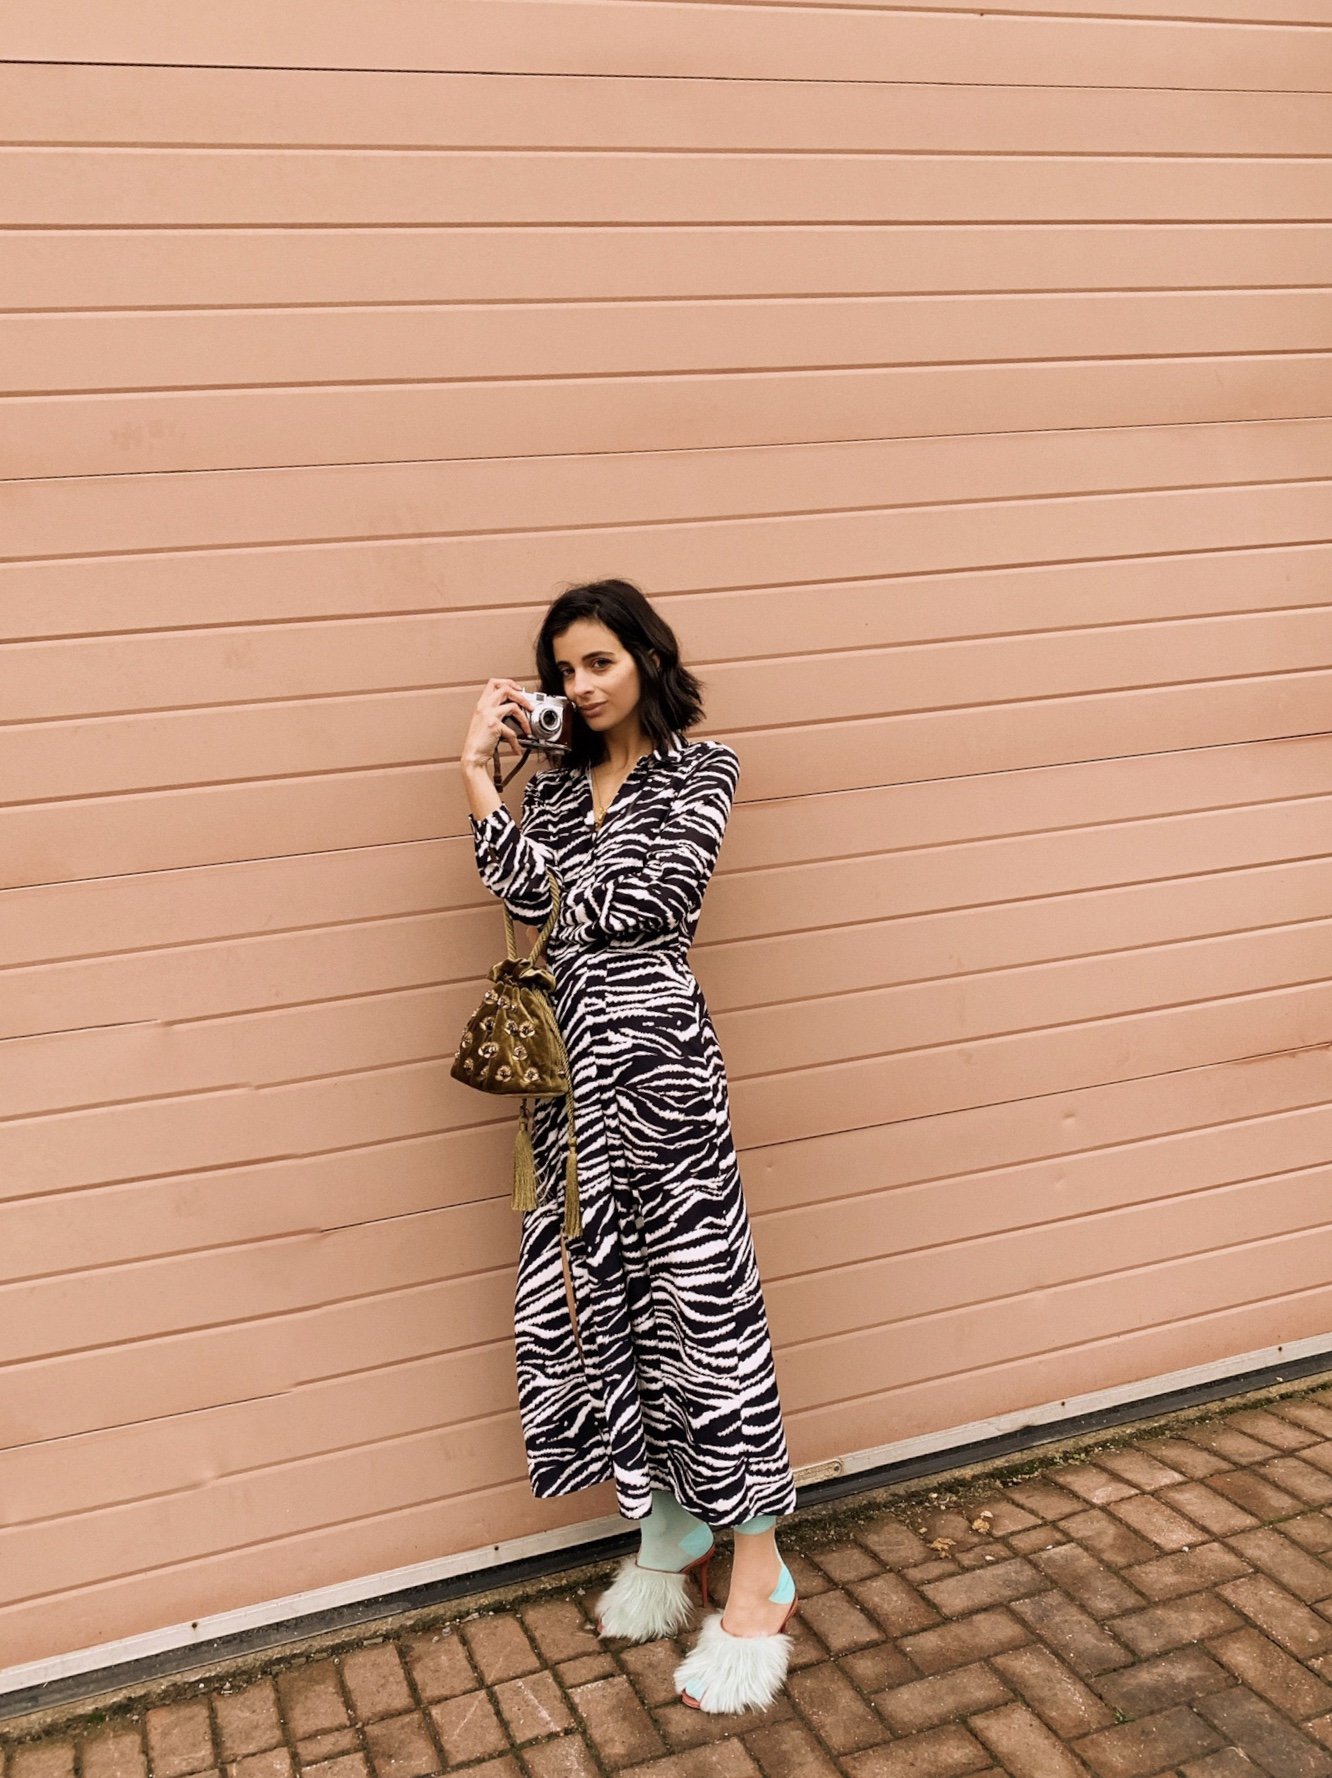 17d17d4749d3 Animal prints are doing the rounds again this season which means, you guys  can wear that leopard or zebra print investment piece you bought last  season all ...